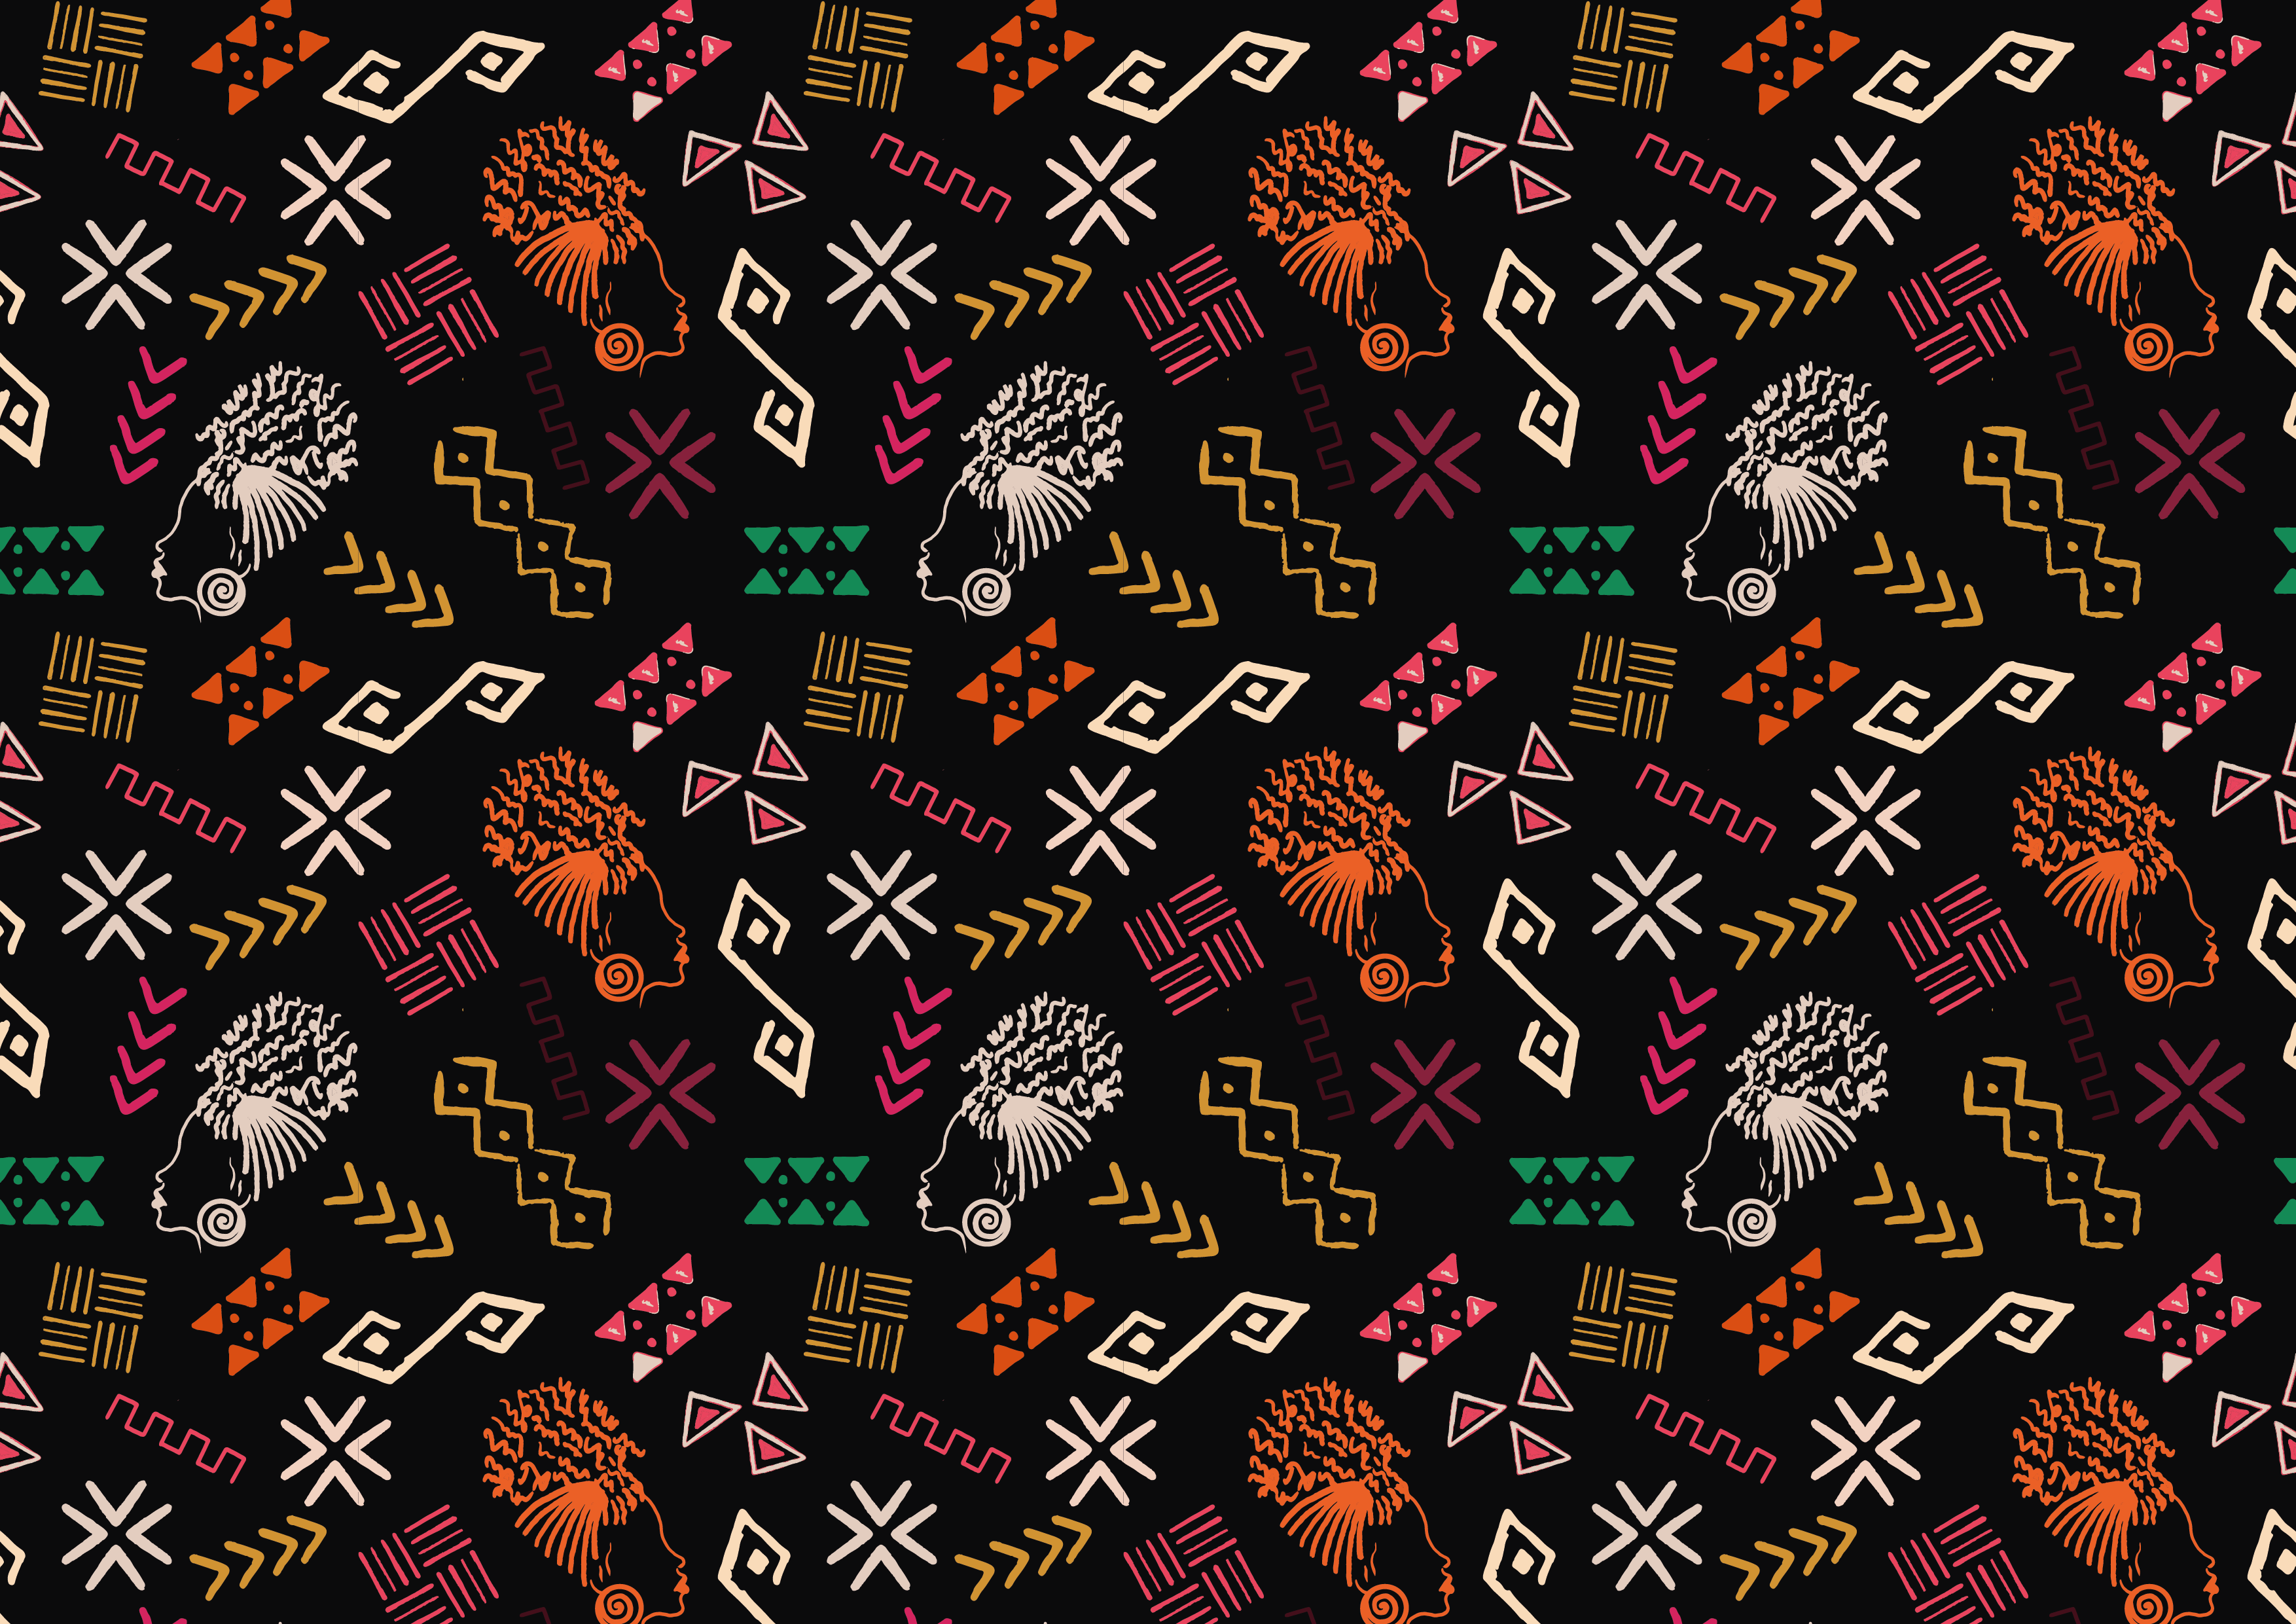 Apparel/Textile Designs Patterns - Multiple Winners